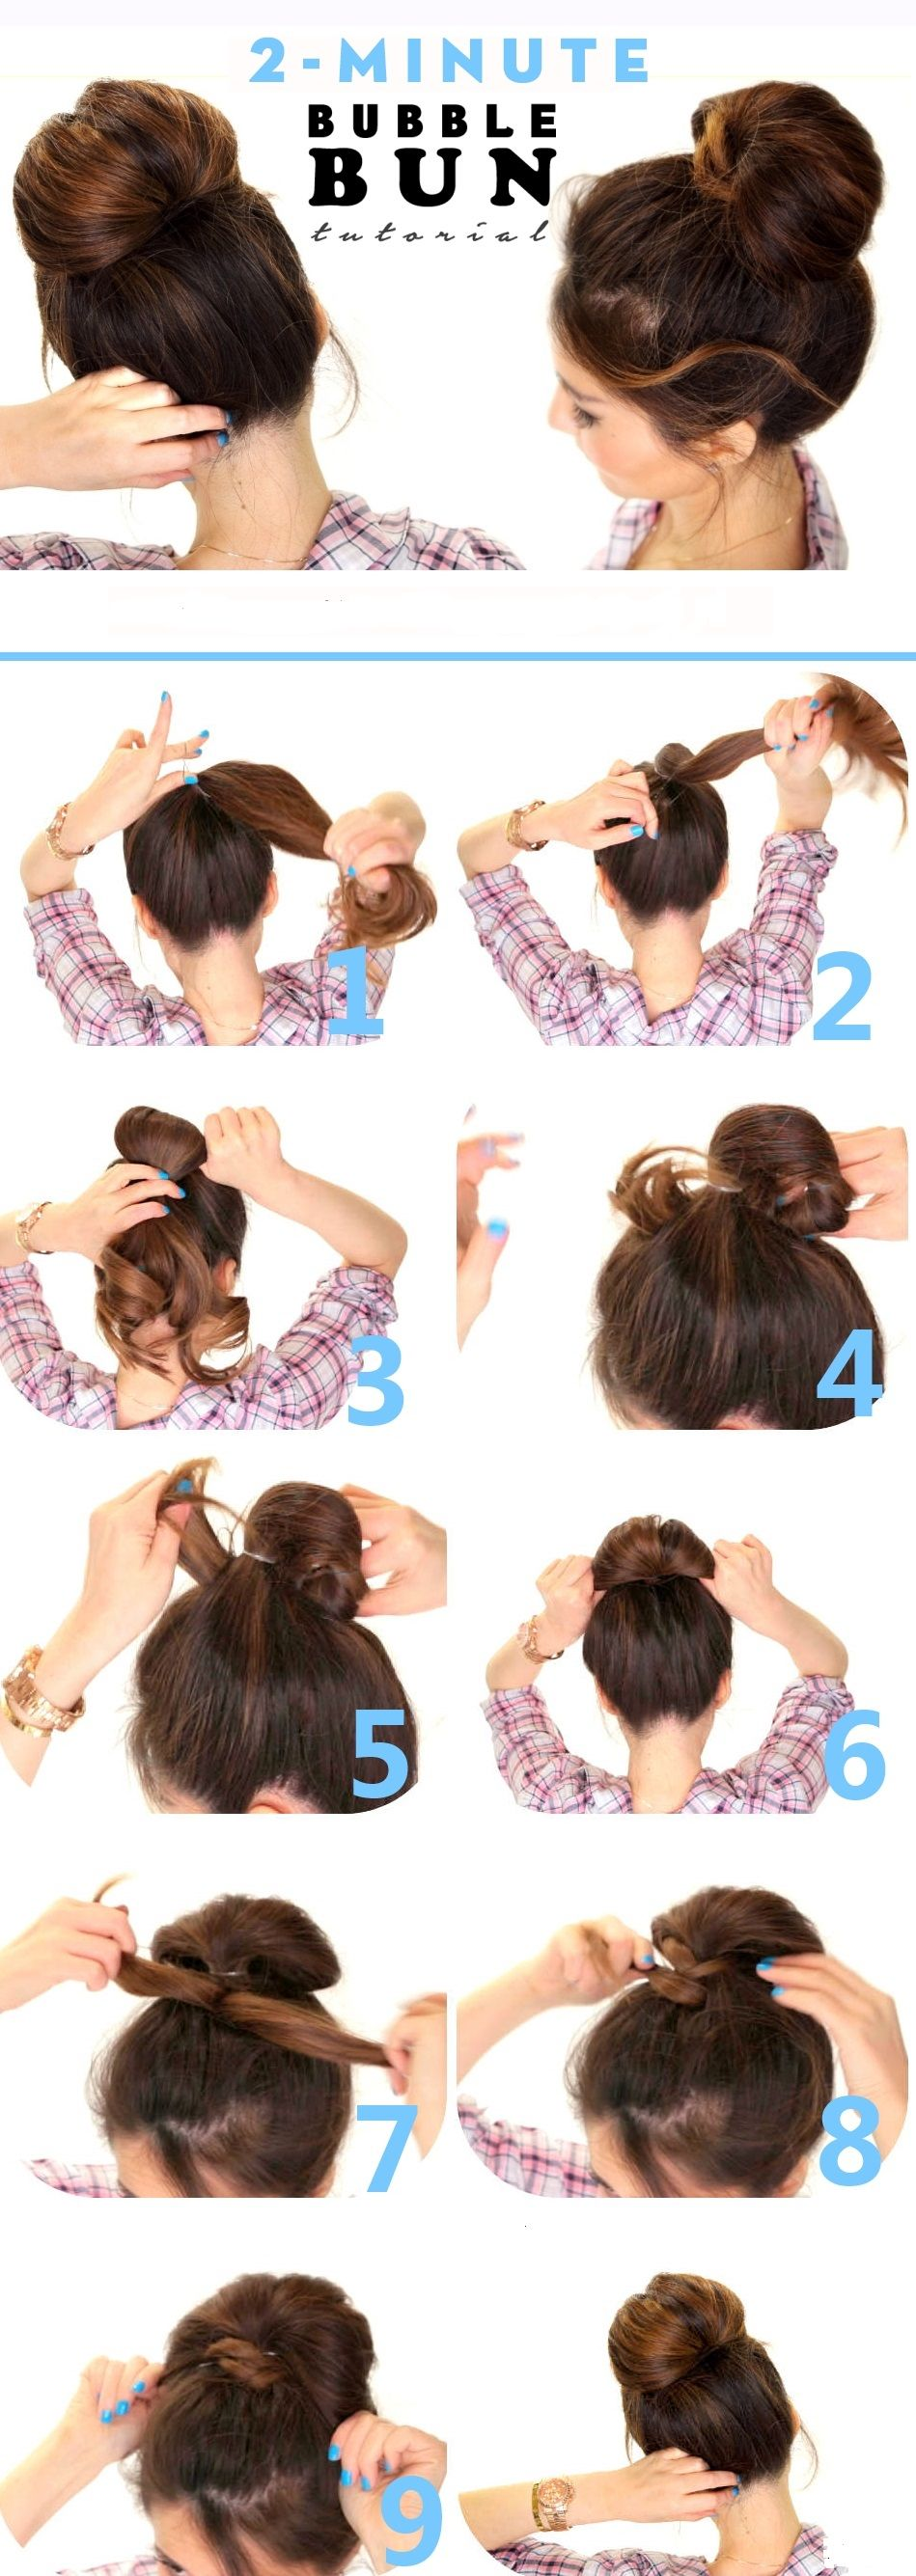 Bubble Bun Hairstyle Step By Step Fashion & Style